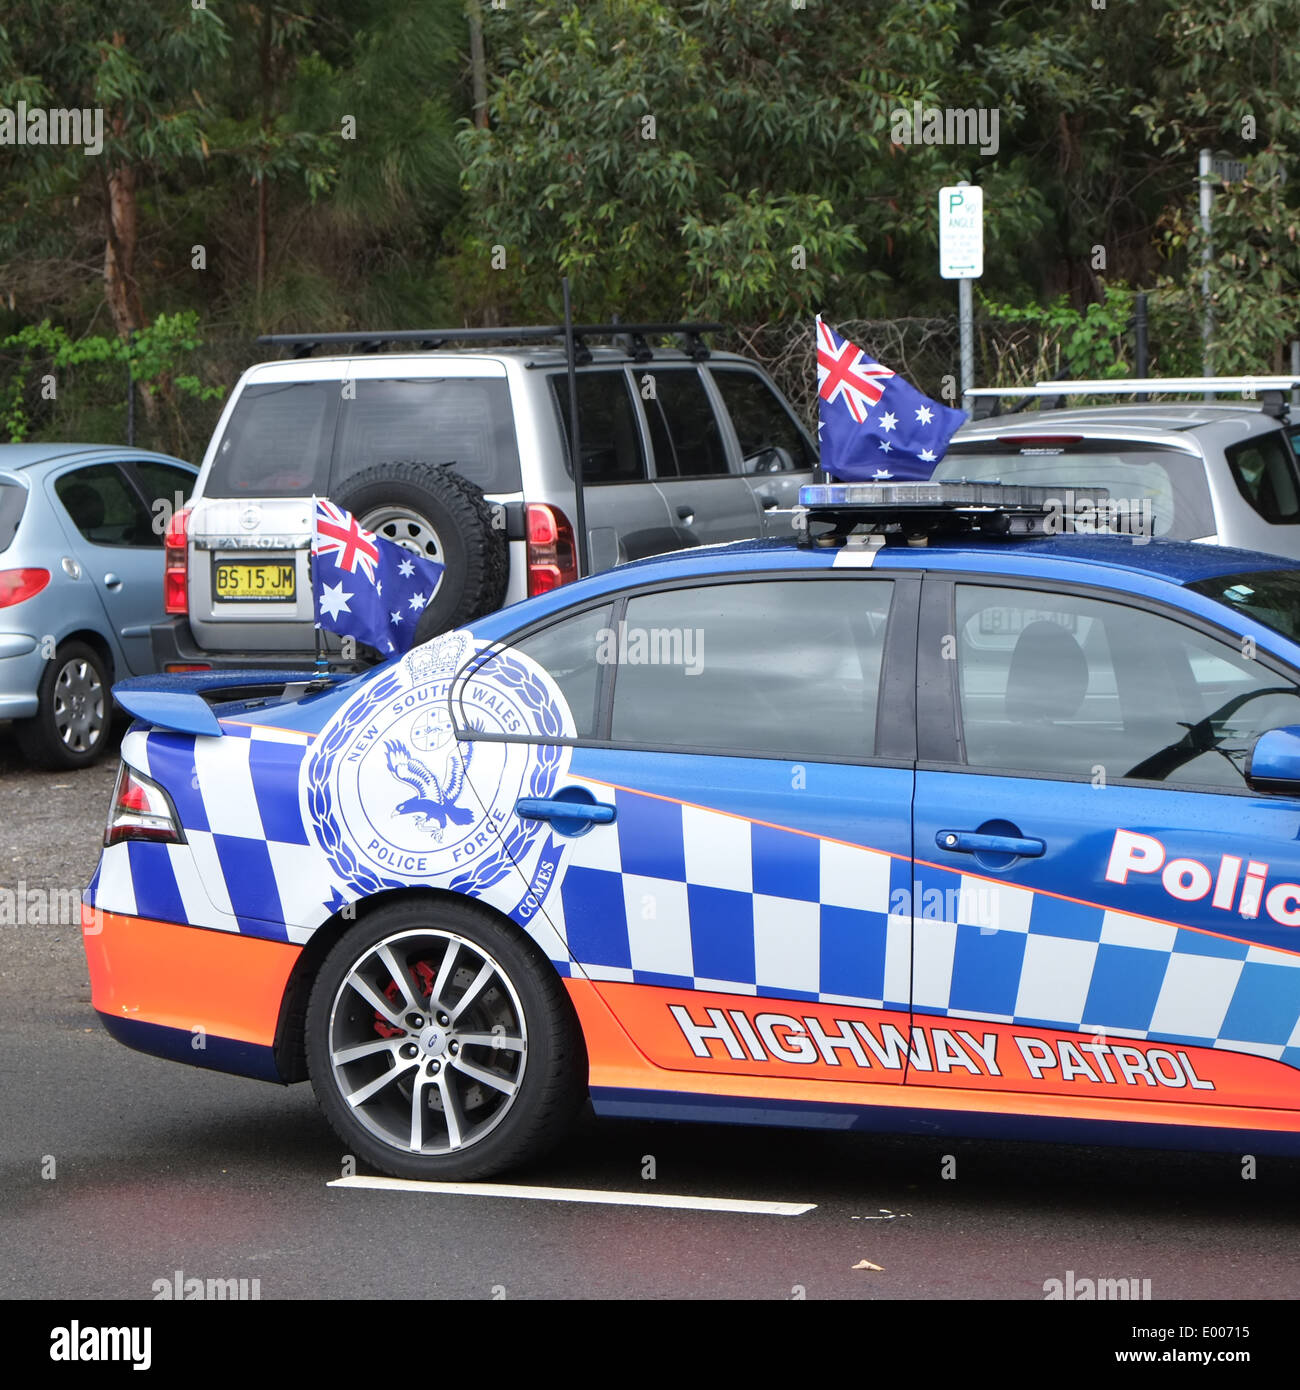 Palm Bay Ford >> New south wales police car in palm beach,sydney,australia Stock Photo, Royalty Free Image ...